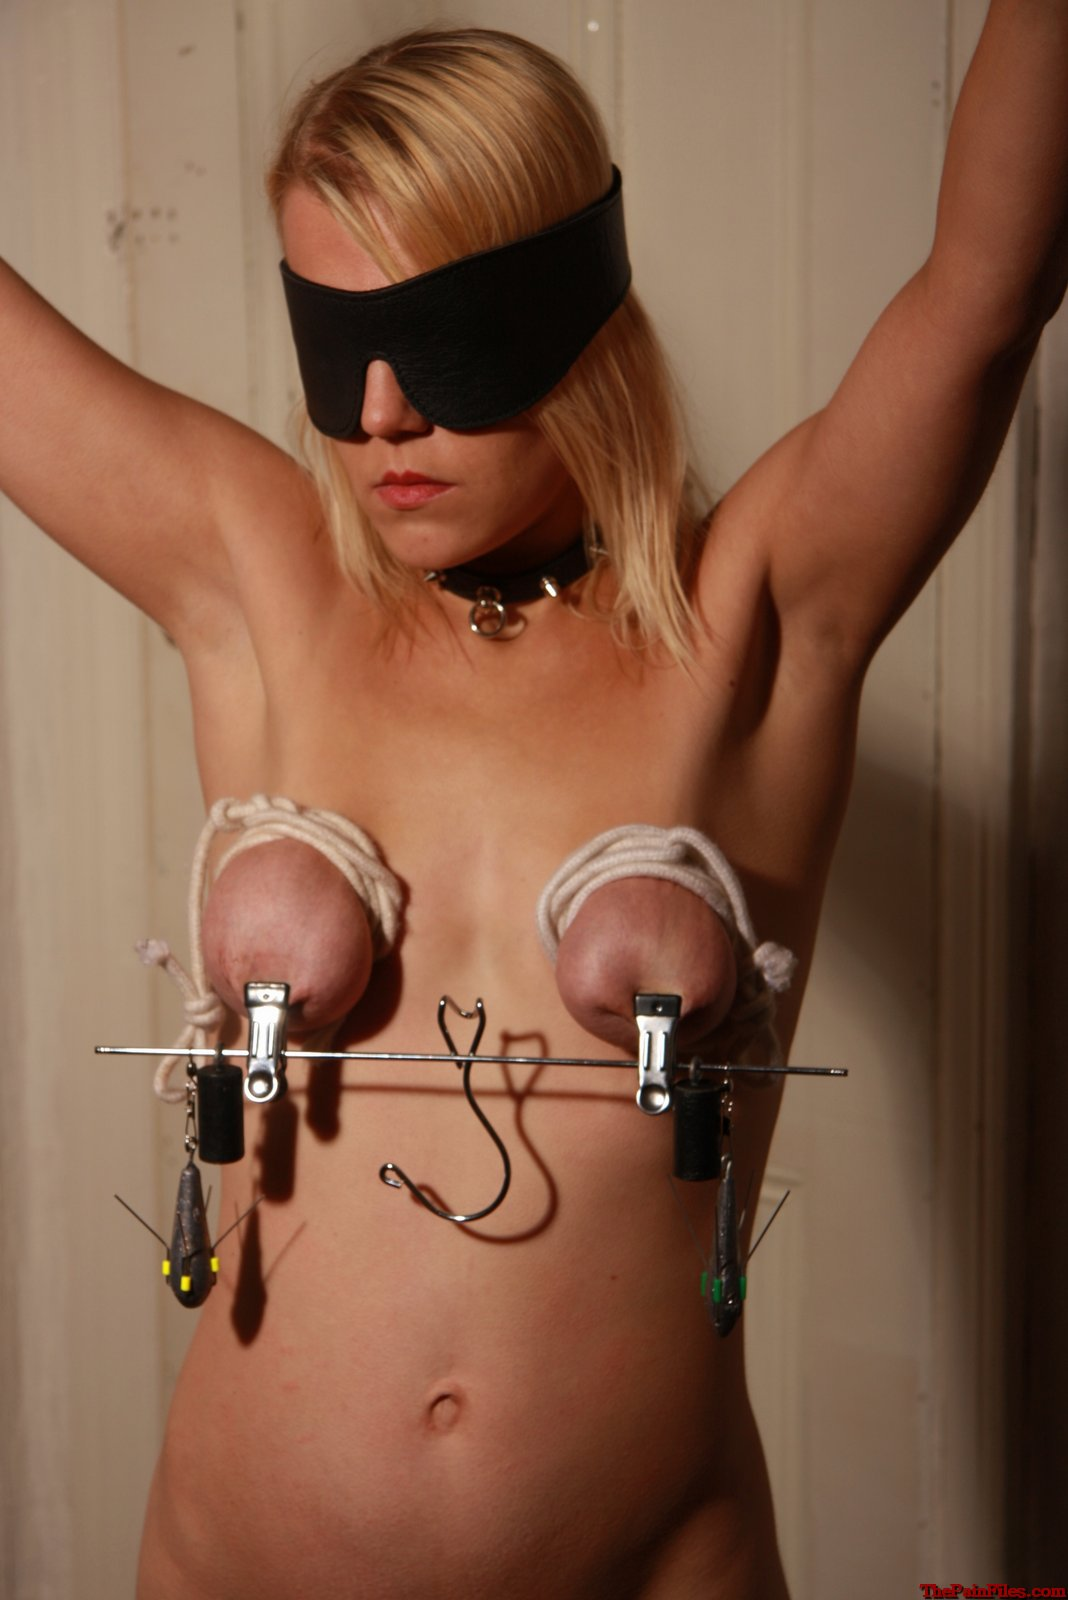 Pictures of bdsm